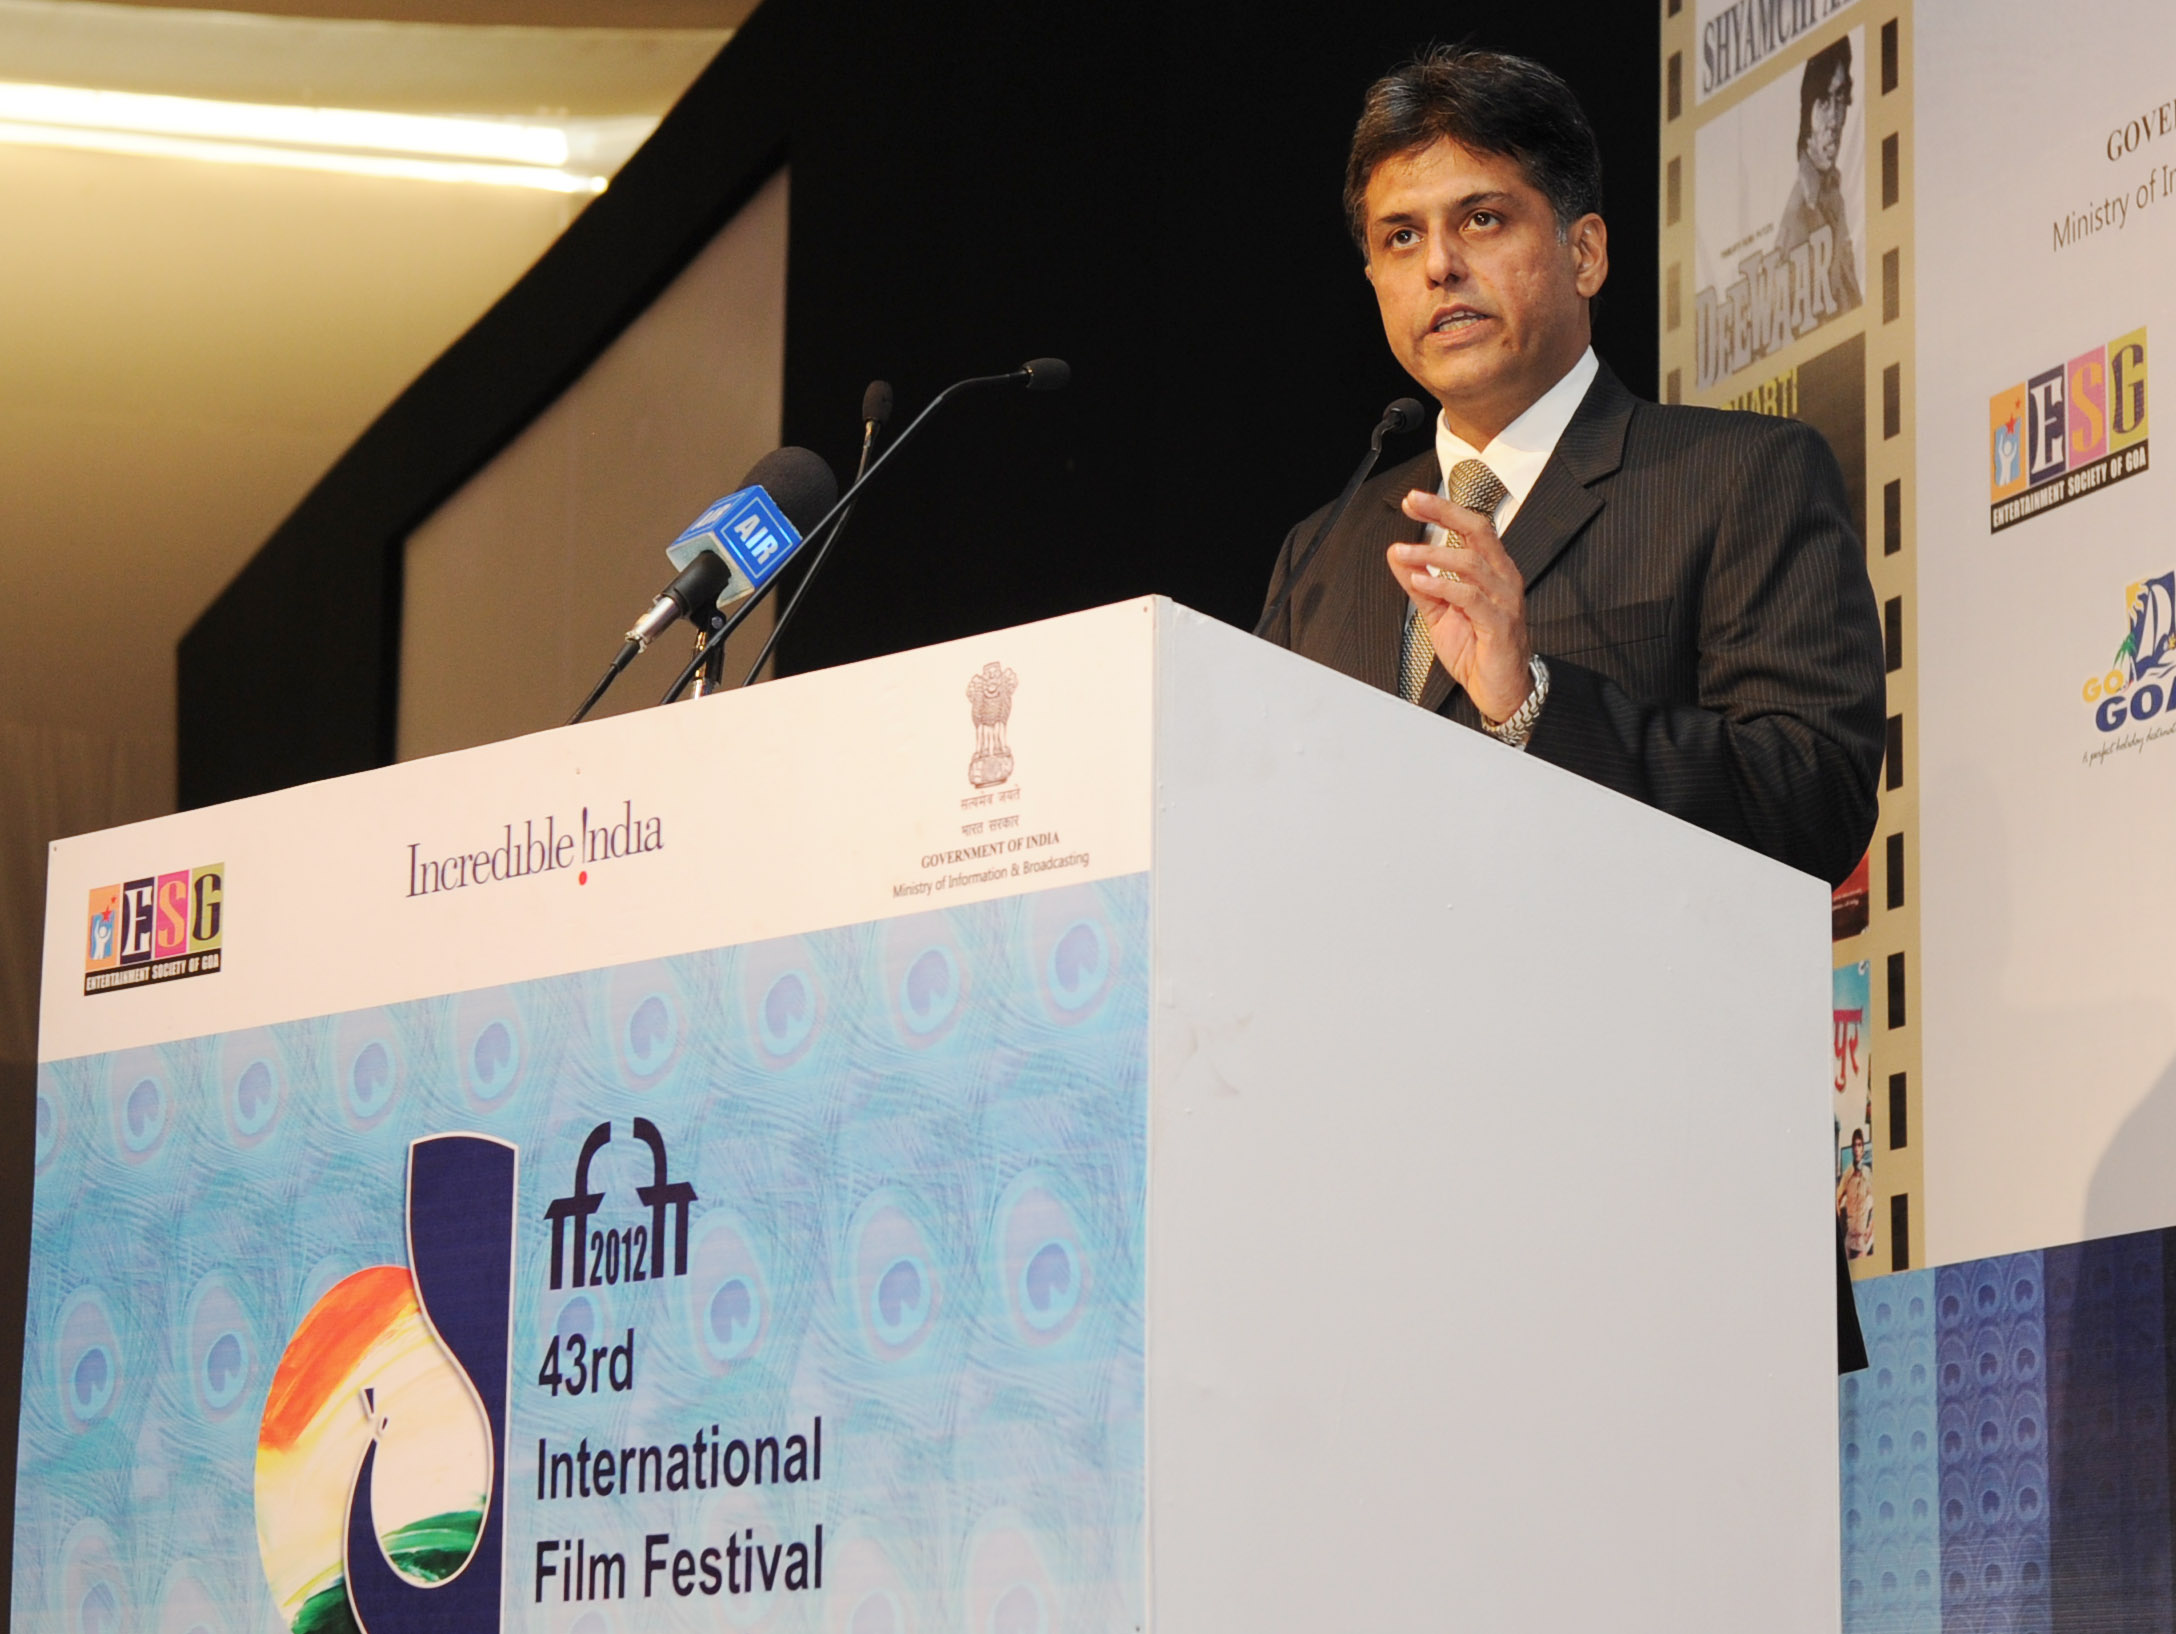 Cinema should be used for larger good of its audience: Manish Tewari